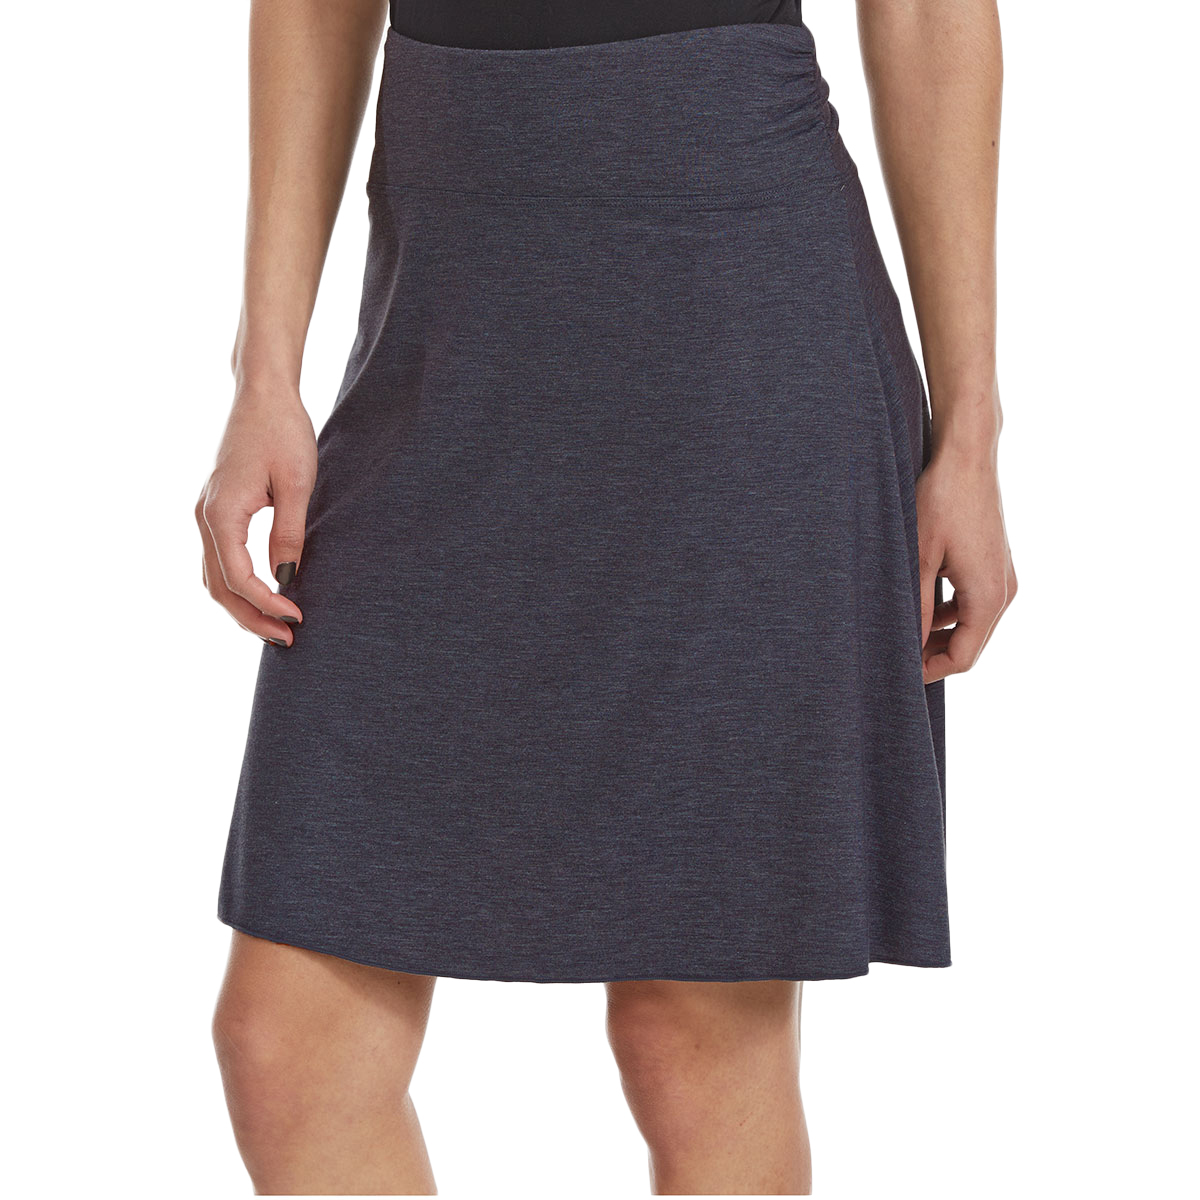 Ems Women's Highland Skirt - Black, S